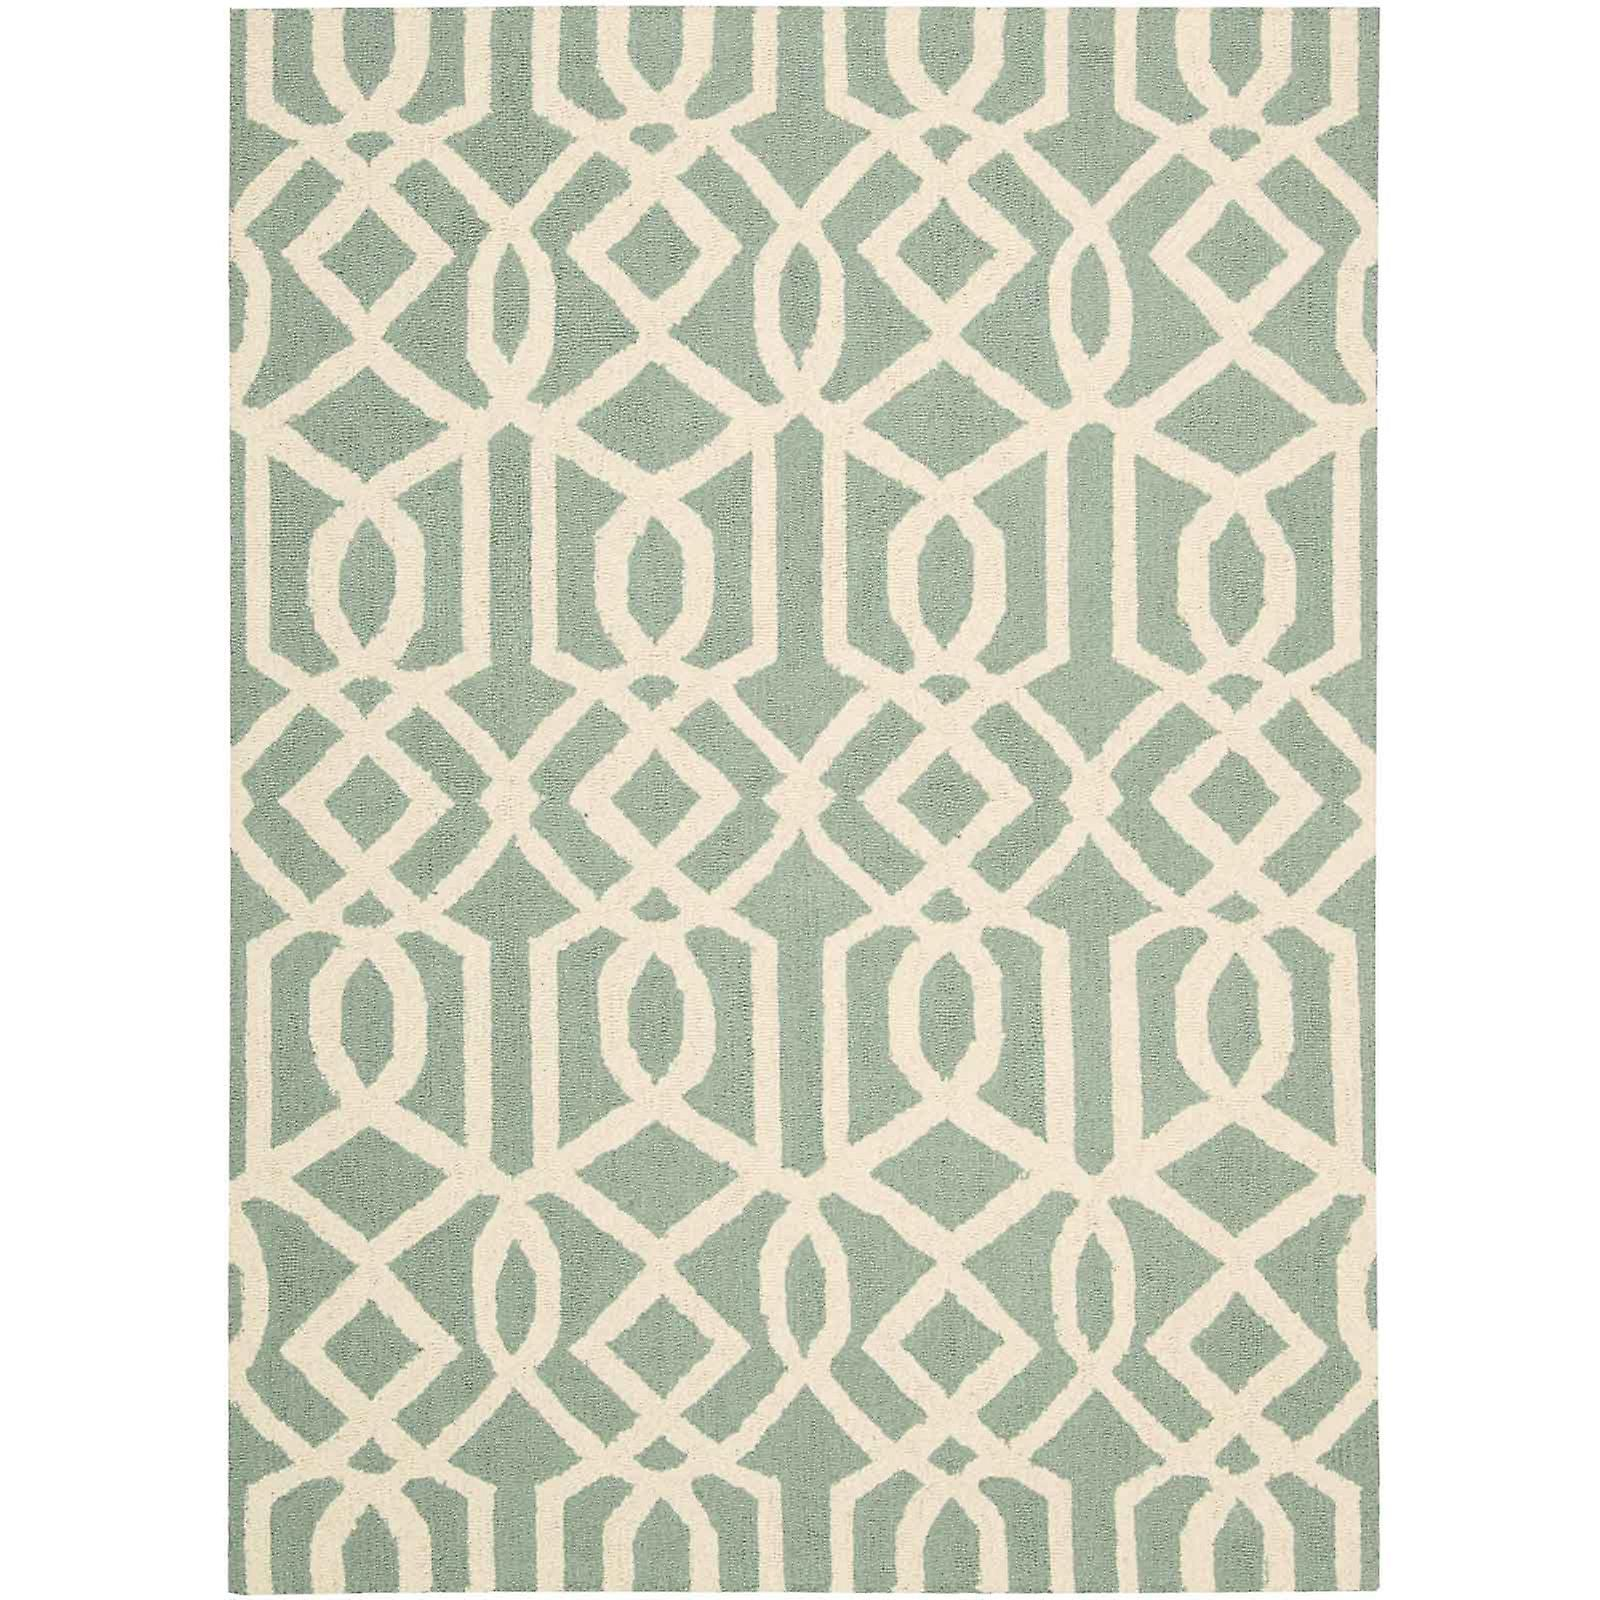 Linear Rugs Lin05 In Aqua And Ivory